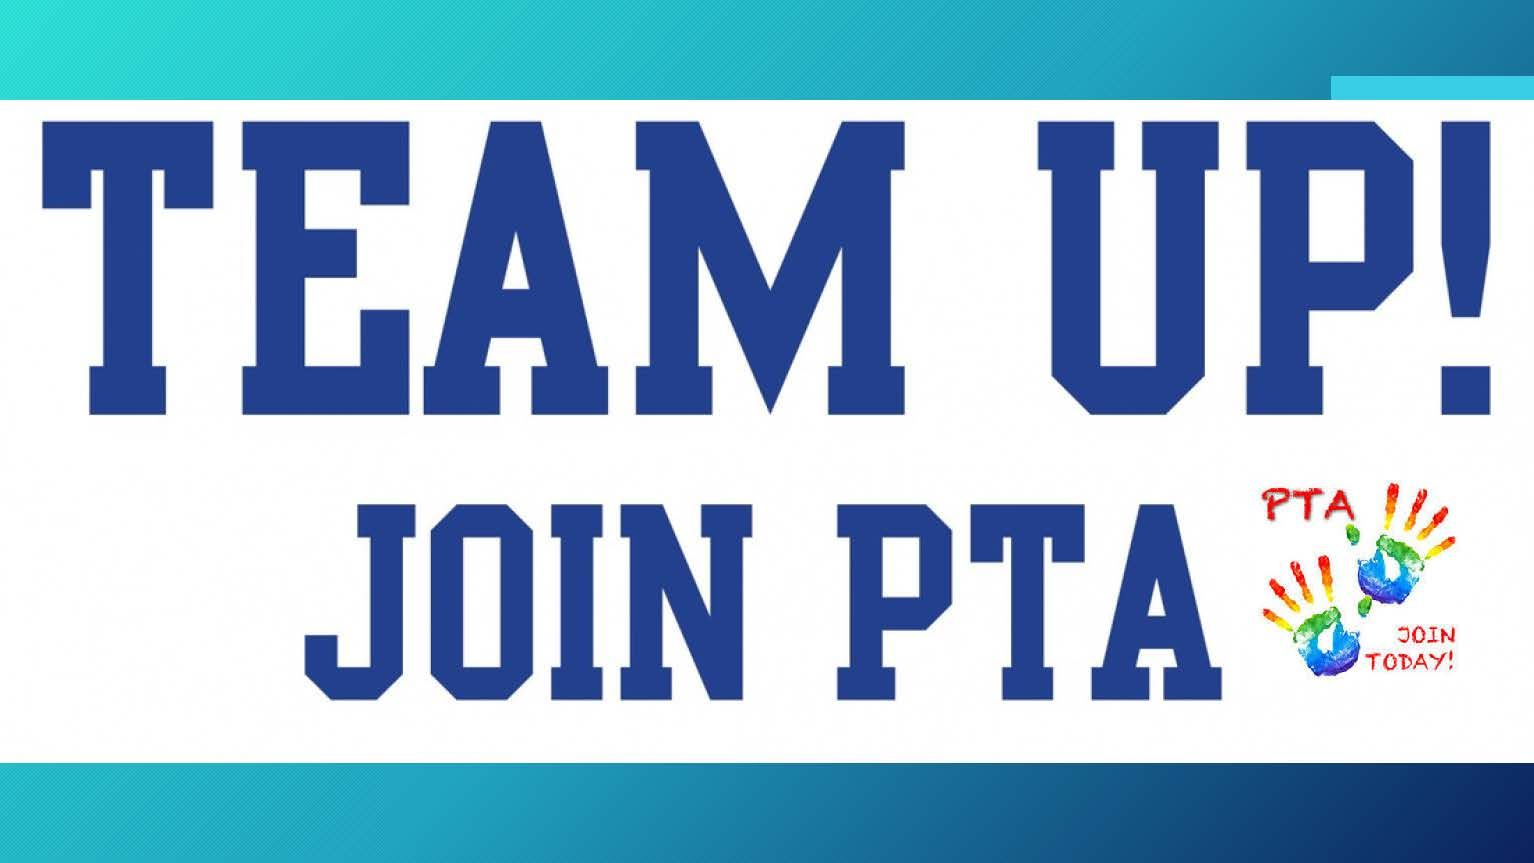 Join PTA: Click to Read More